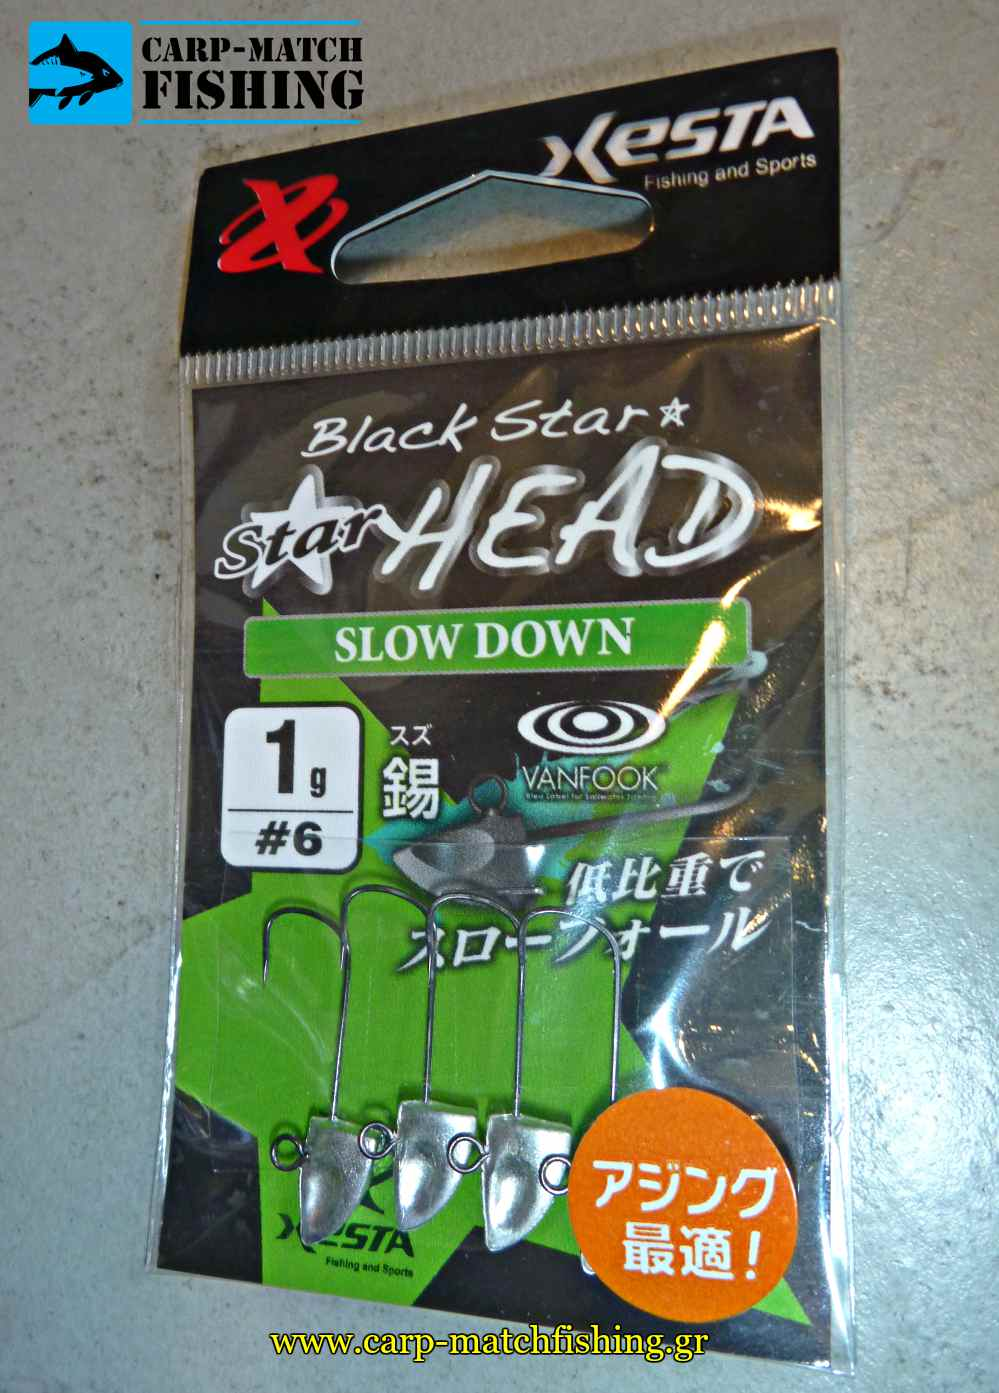 xesta jighead sow down0star head lrf carpmatchfishing molyvokefali